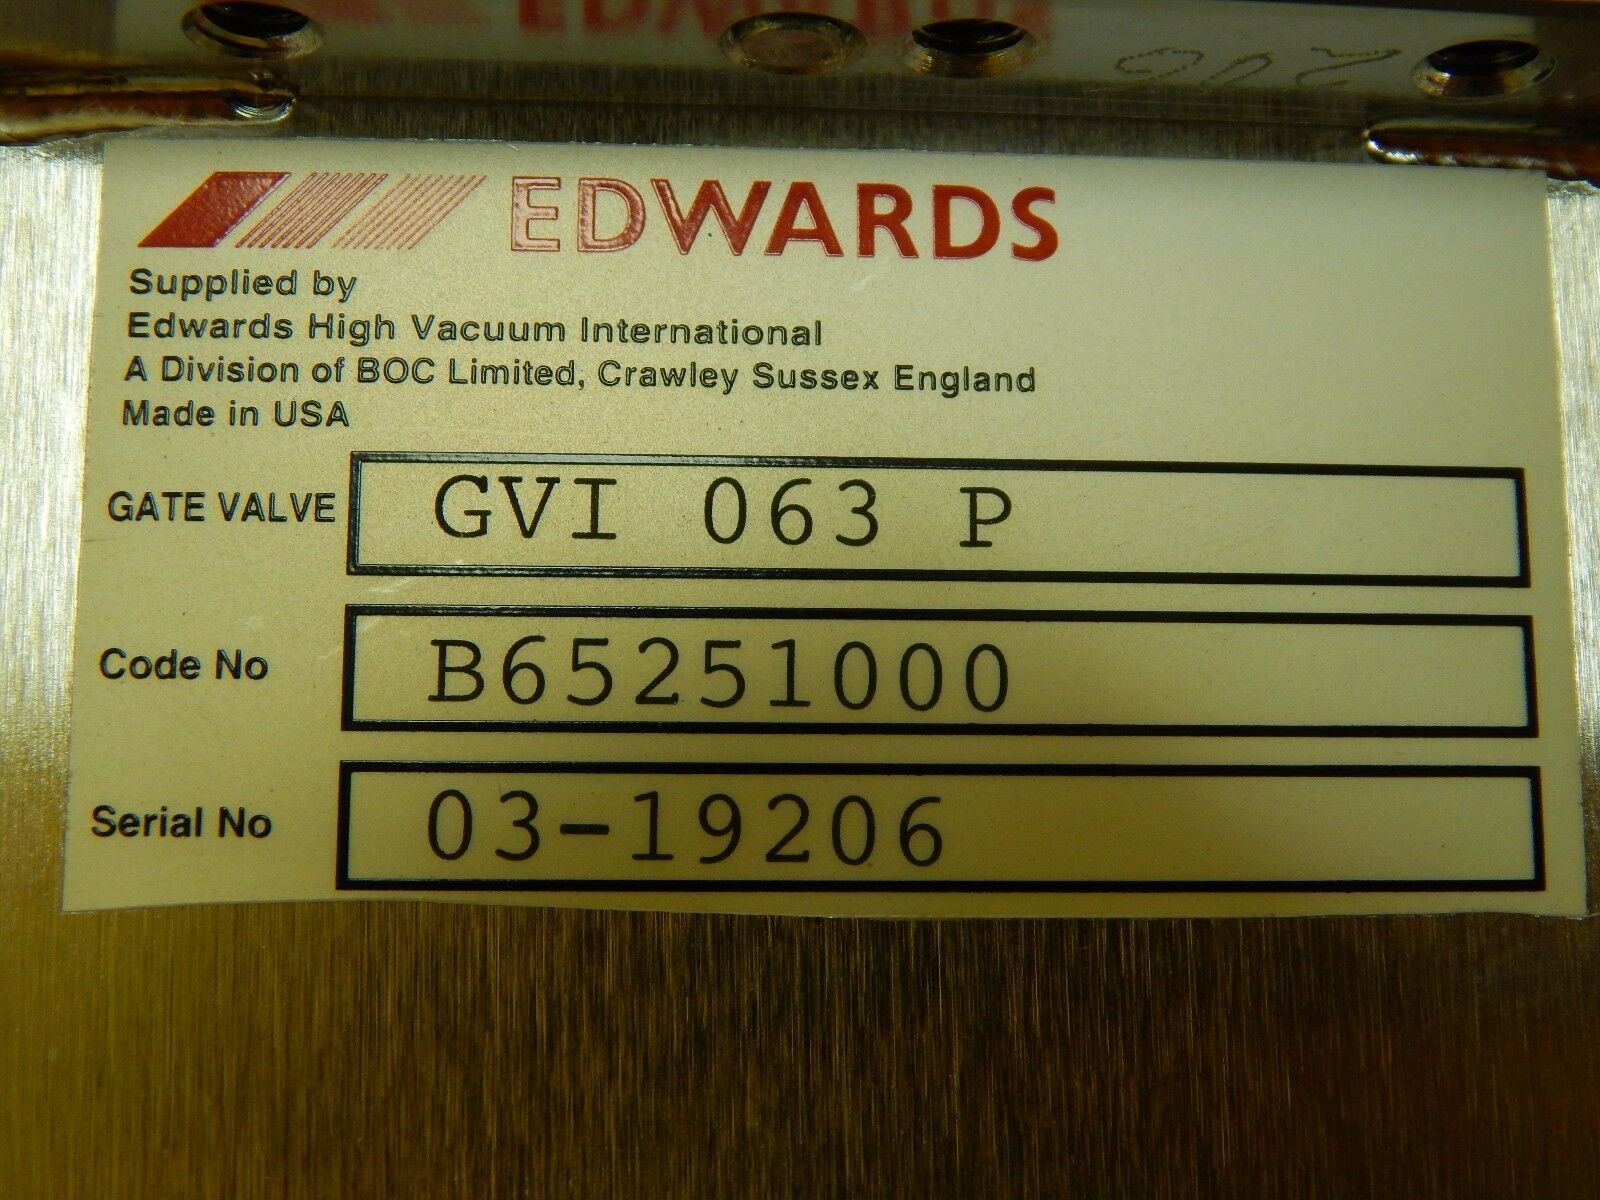 Edwards B65251000 Pneumatic Gate Valve GVI 063 P FEI Company 160-009450 Used